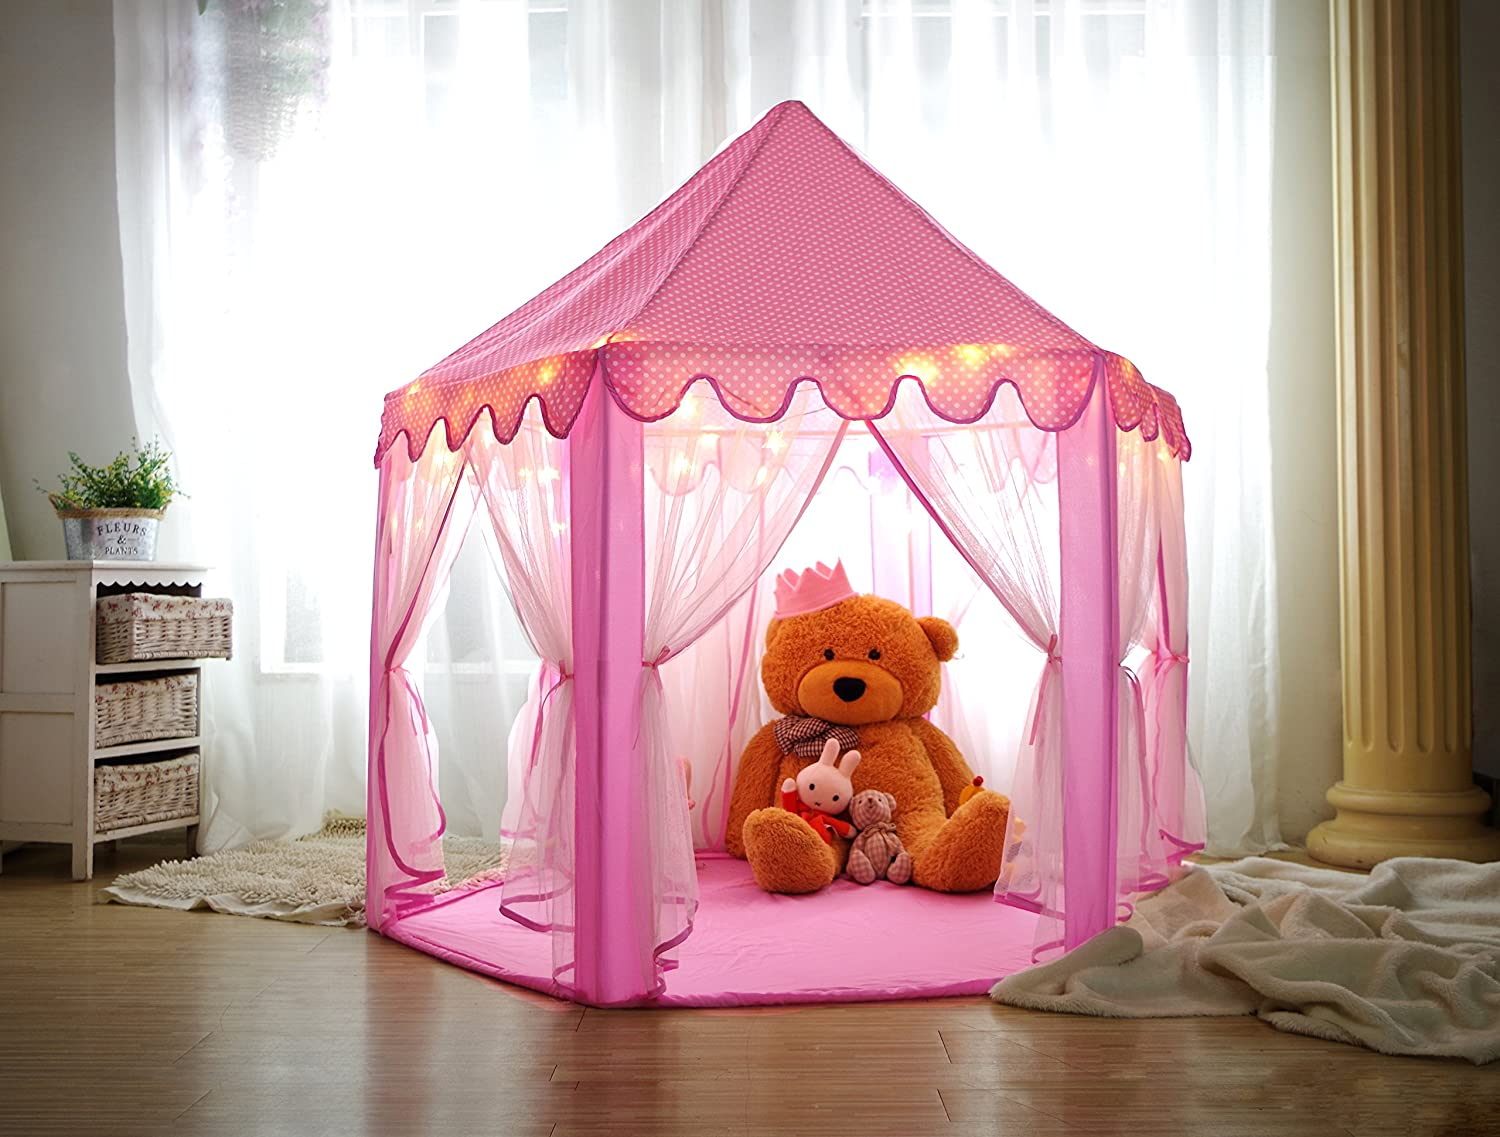 Amazon.com Kids Play House Princess Tent - Indoor and Outdoor Hexagon Pink Castle Play tent for Girls with LED Light by MonoBeach Kitchen u0026 Dining & Amazon.com: Kids Play House Princess Tent - Indoor and Outdoor ...